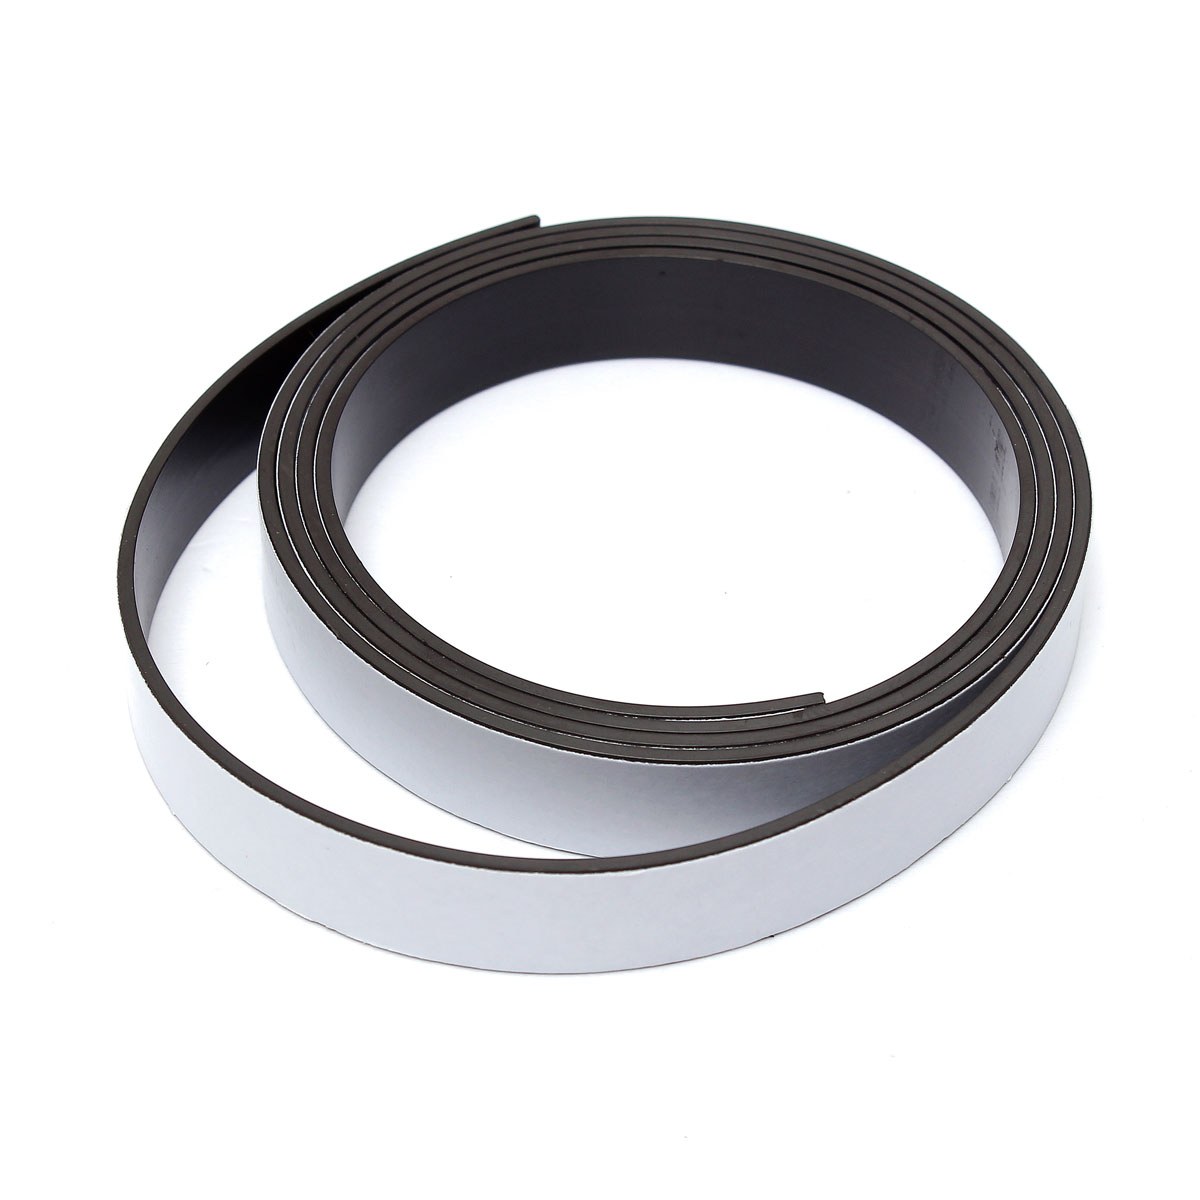 1mx12.5mmx2.2mm Self Adhesive Flexible Magnetic Strip Tape Strong Magnet Tapes